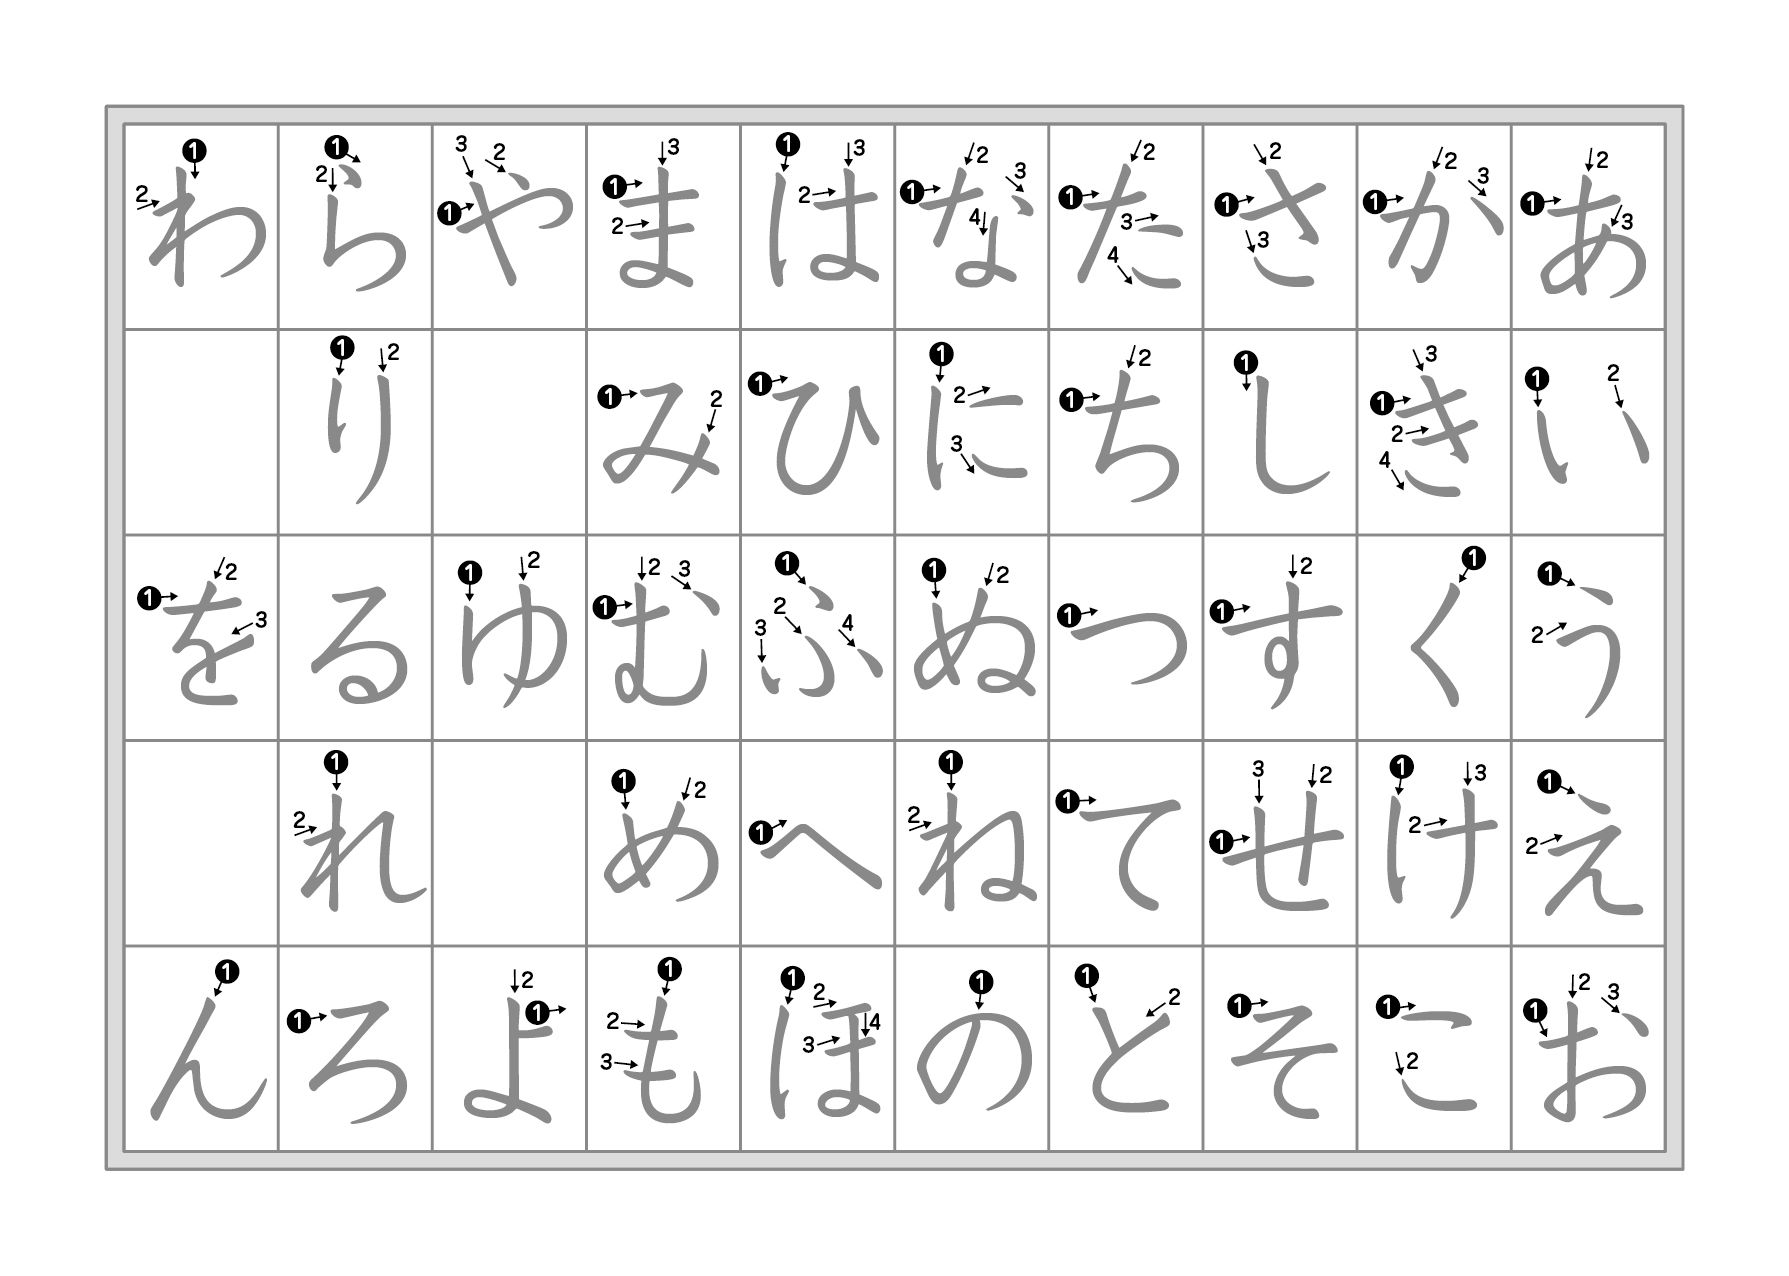 27 Hiragana Charts Stroke Order Practice Mnemonics And